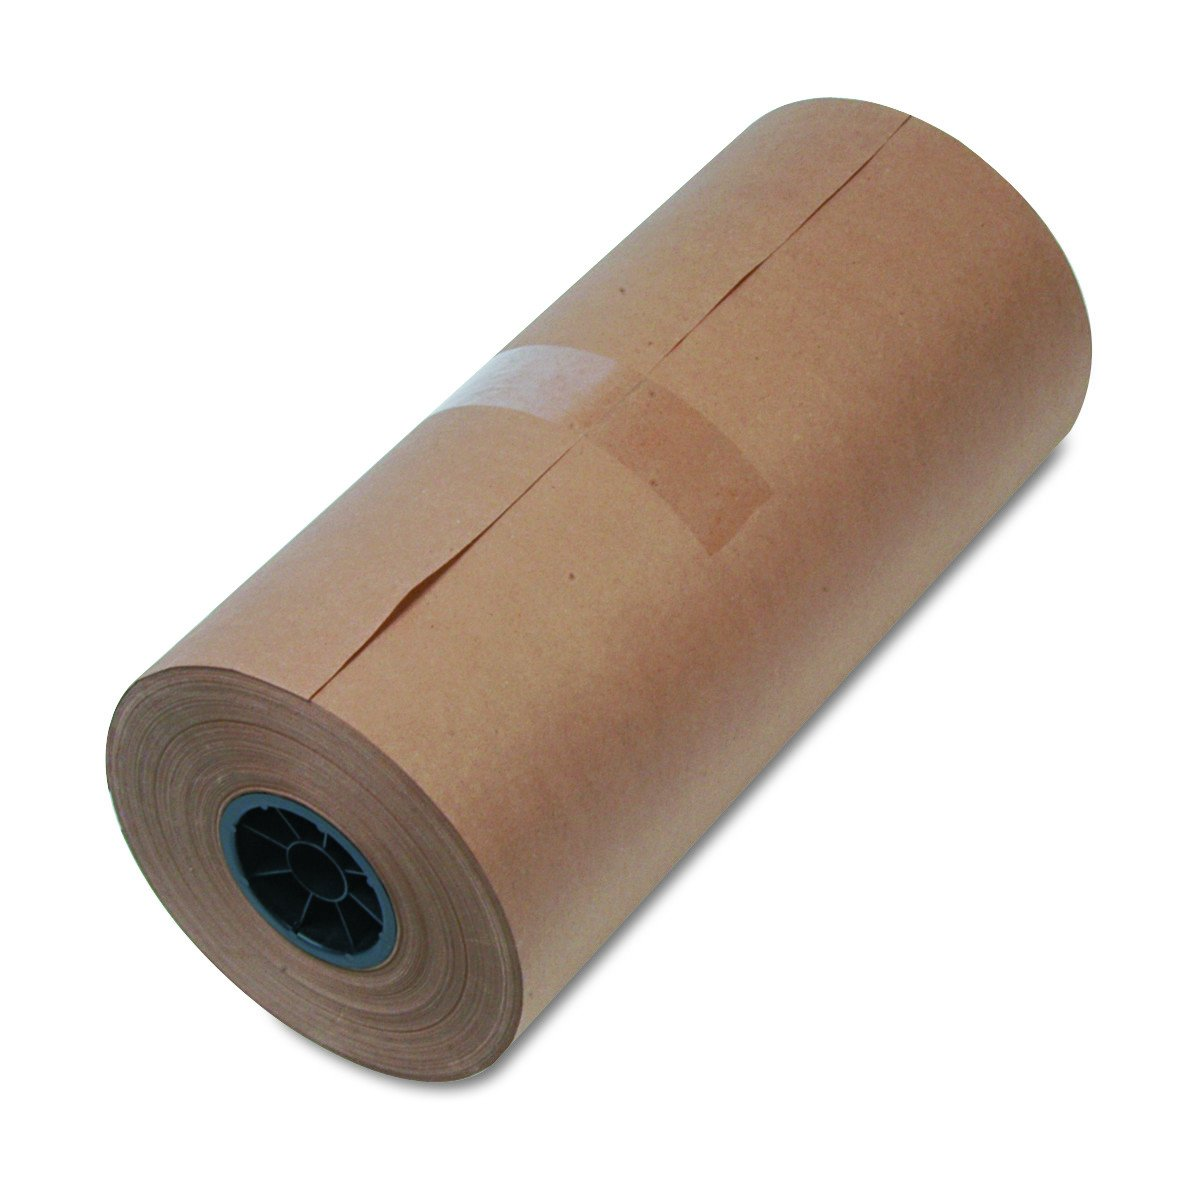 mediumweight 9 Dia 18w x 900-ft. Brown Kraft Wrapping Paper roll United Facility Supply 1300015 40-Lb